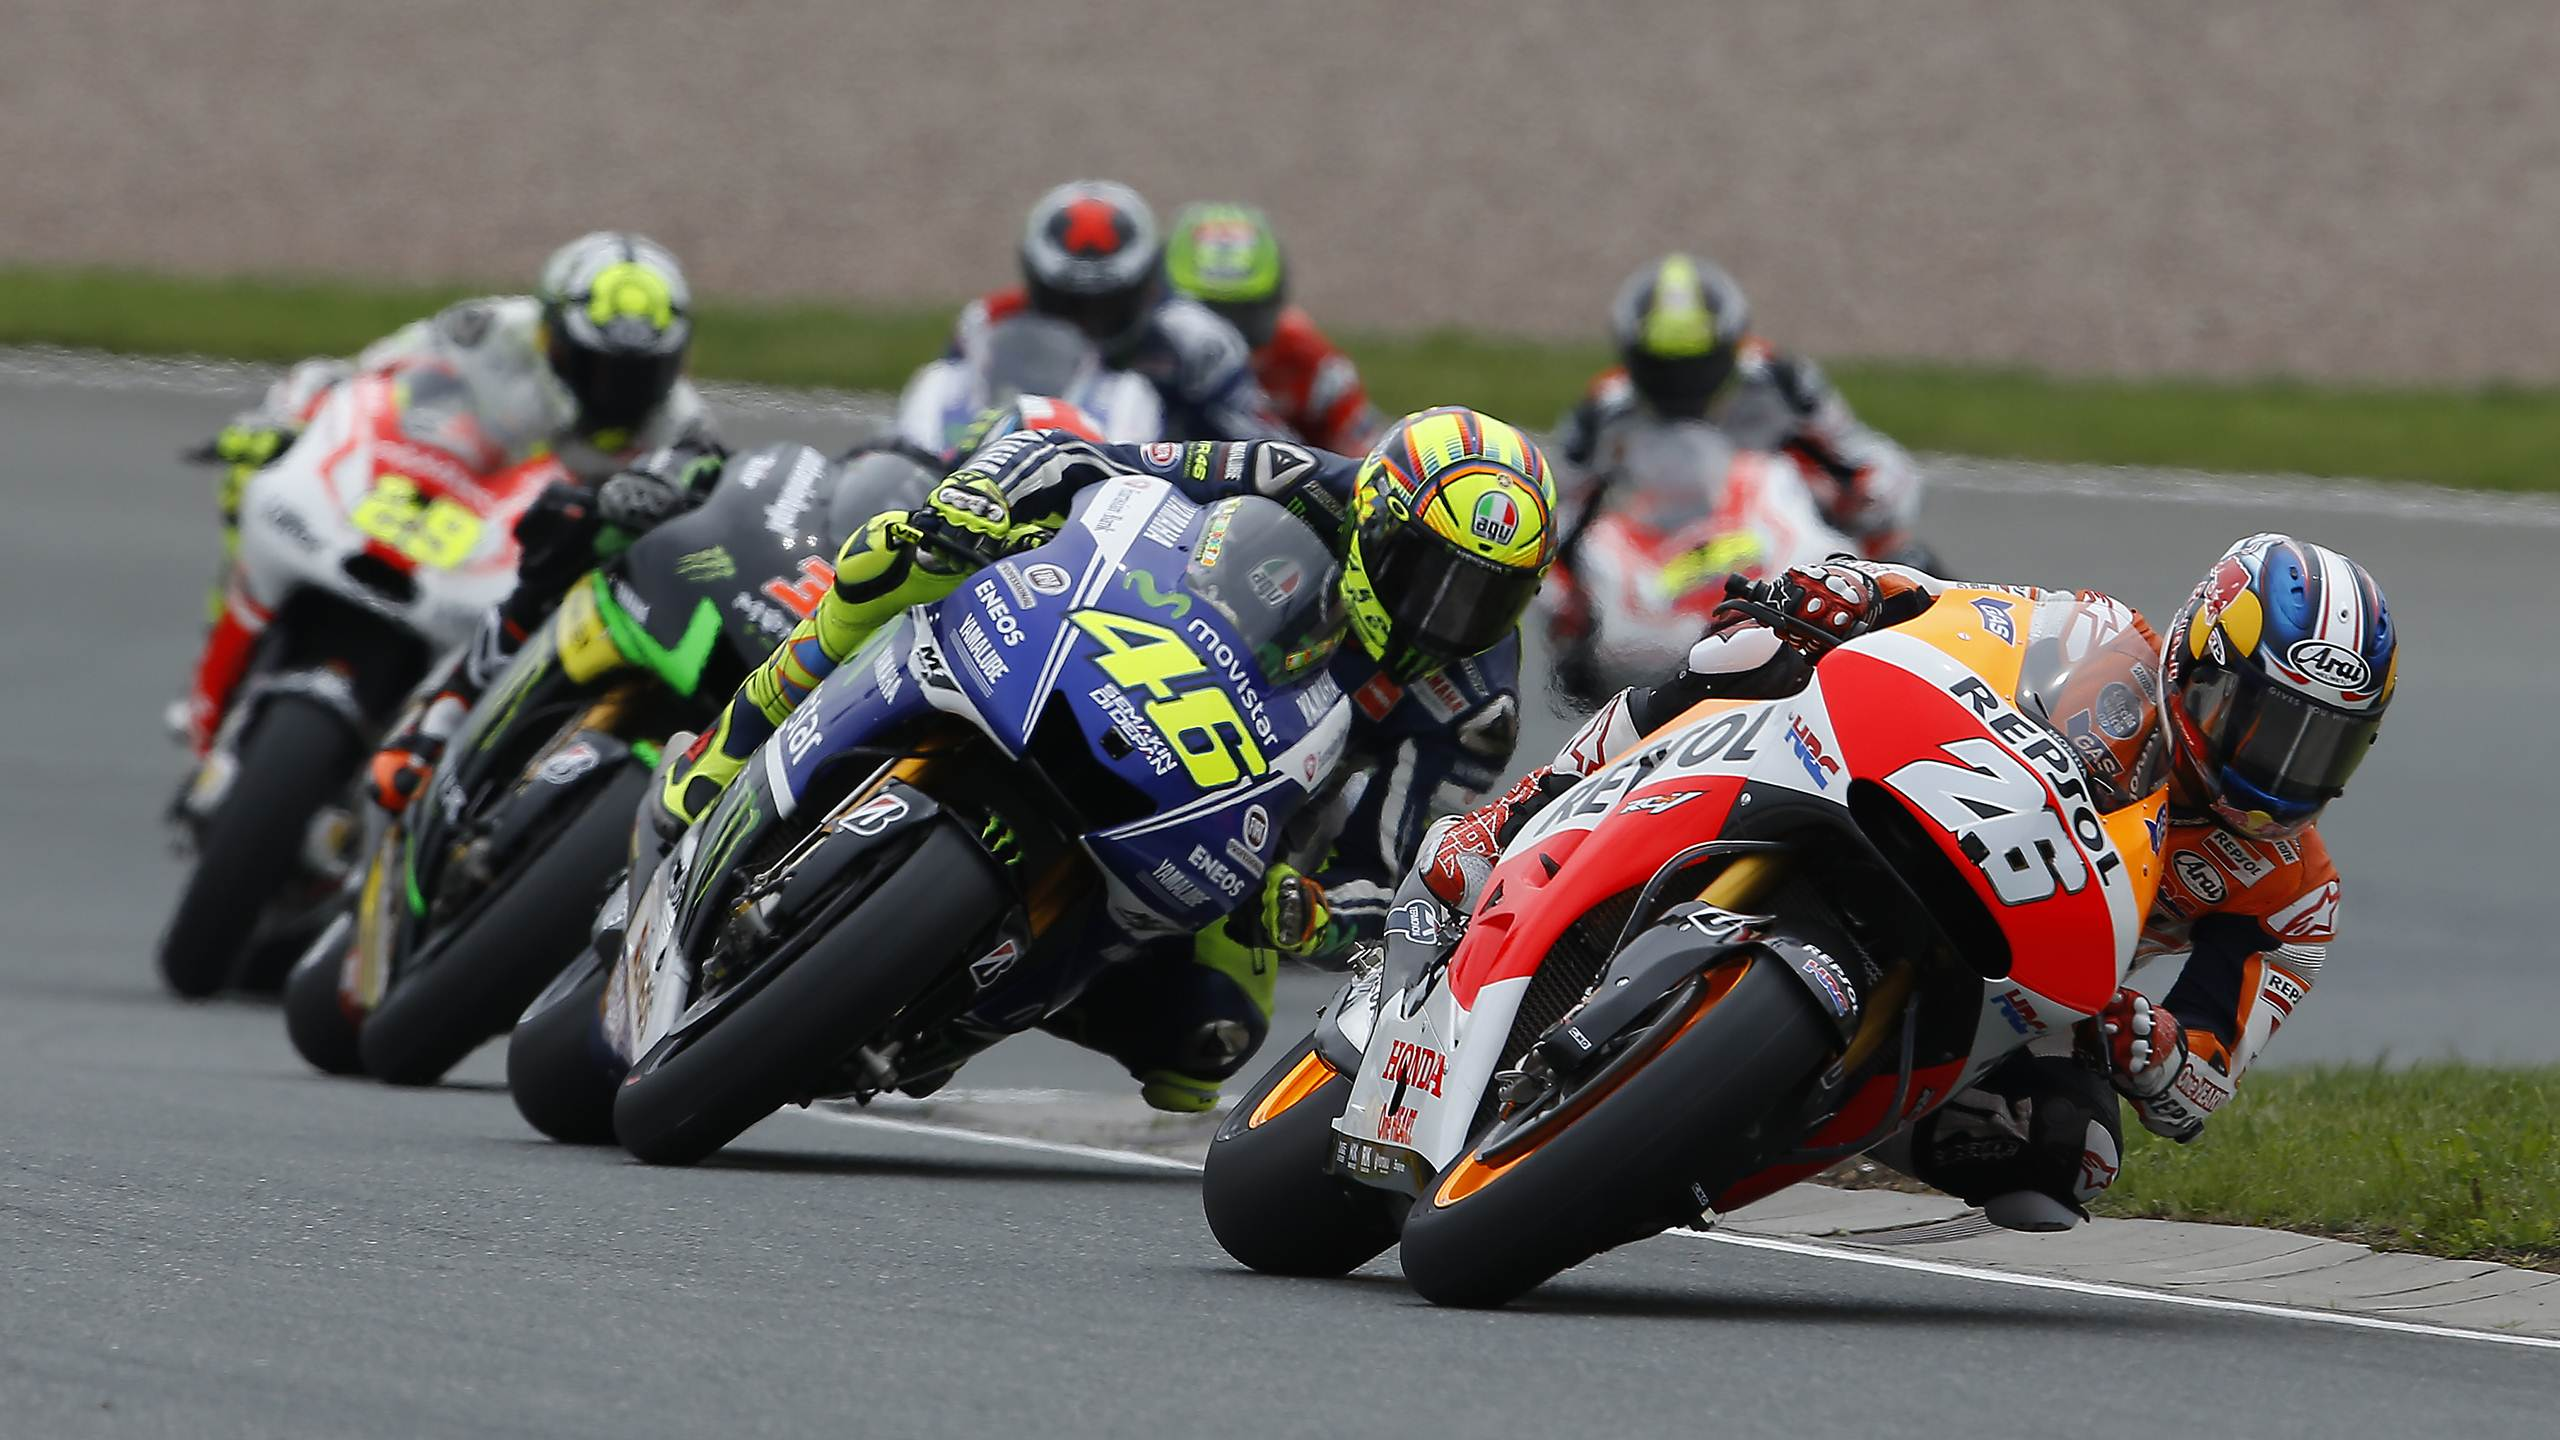 MotoGP 2014 Indianapolis preview